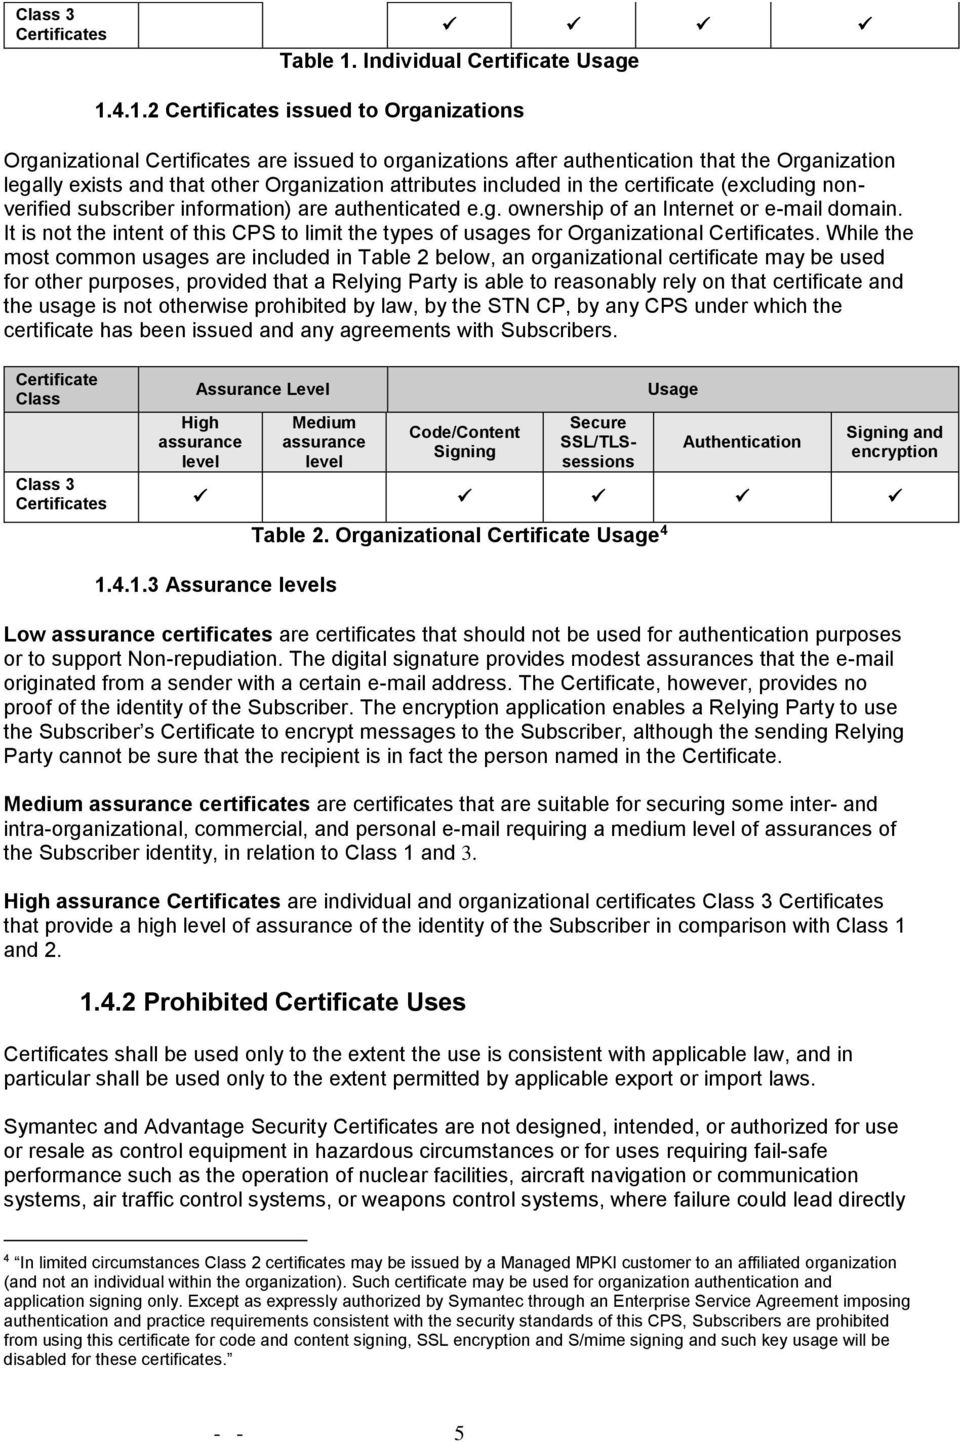 4.1.2 Certificates issued to Organizations Organizational Certificates are issued to organizations after authentication that the Organization legally exists and that other Organization attributes